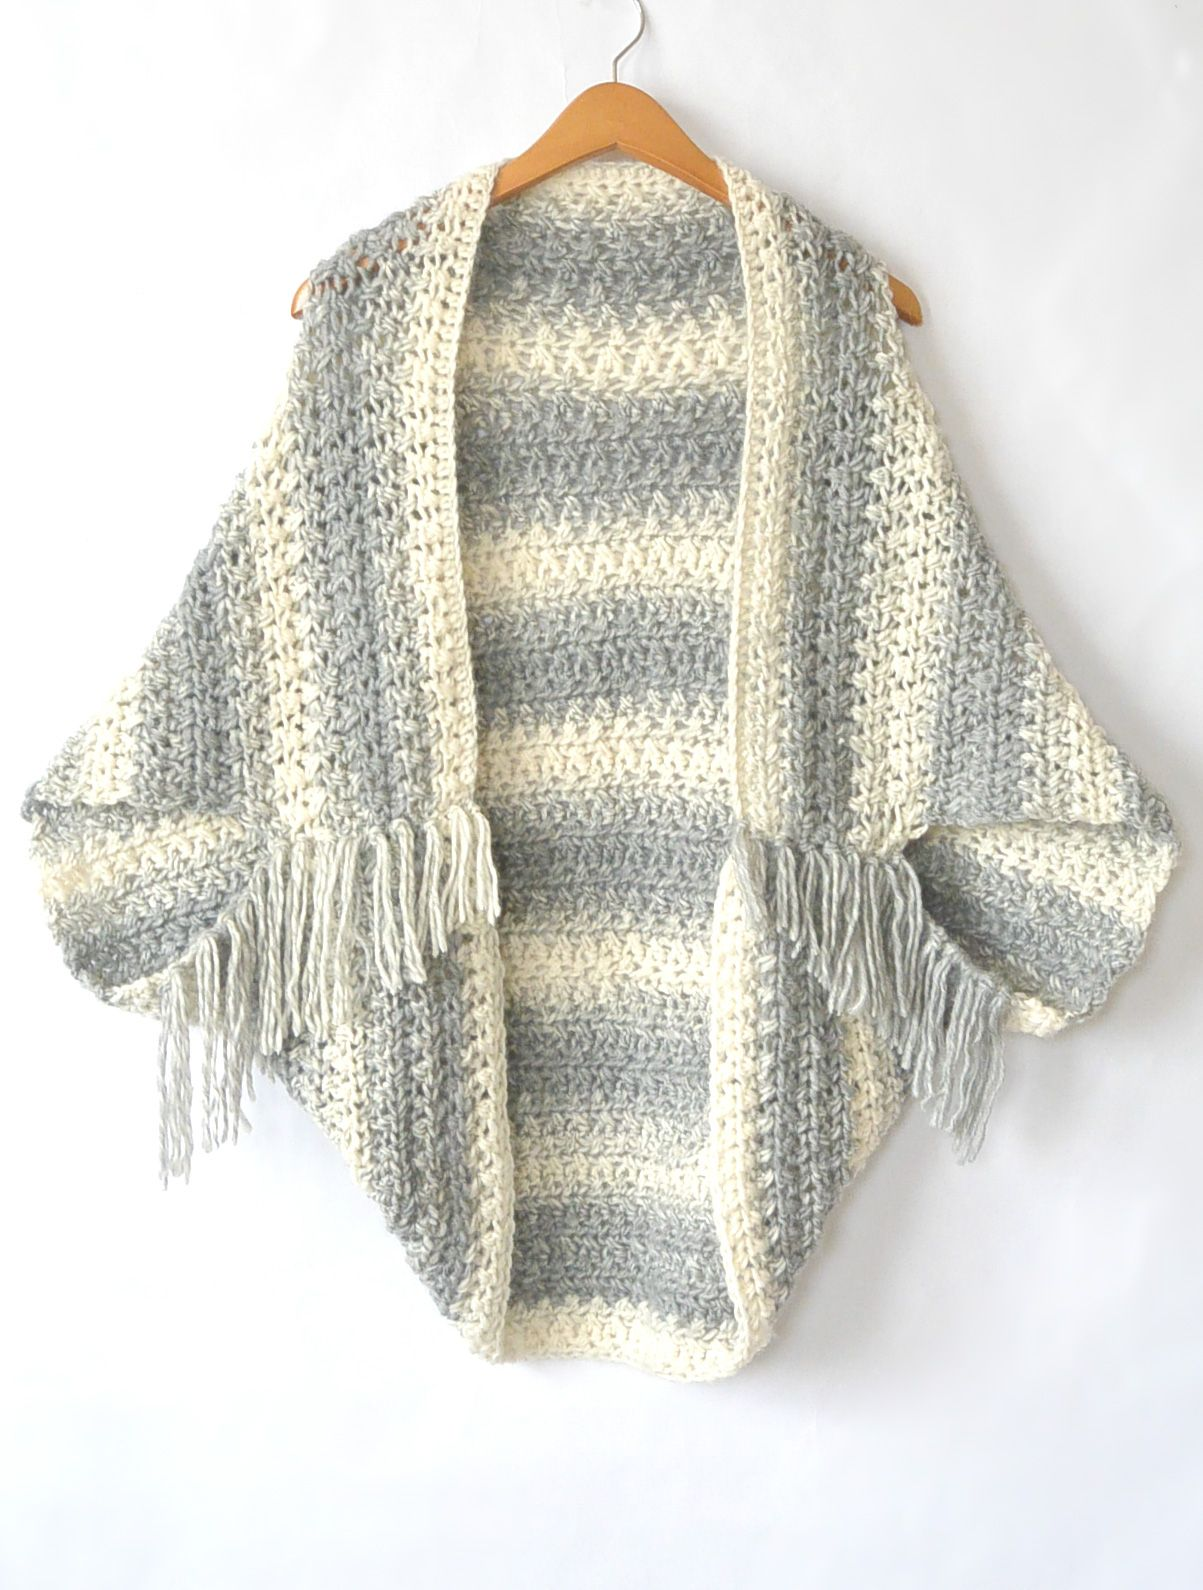 Light Frost Easy Blanket Sweater Crochet Pattern | Crochet ...